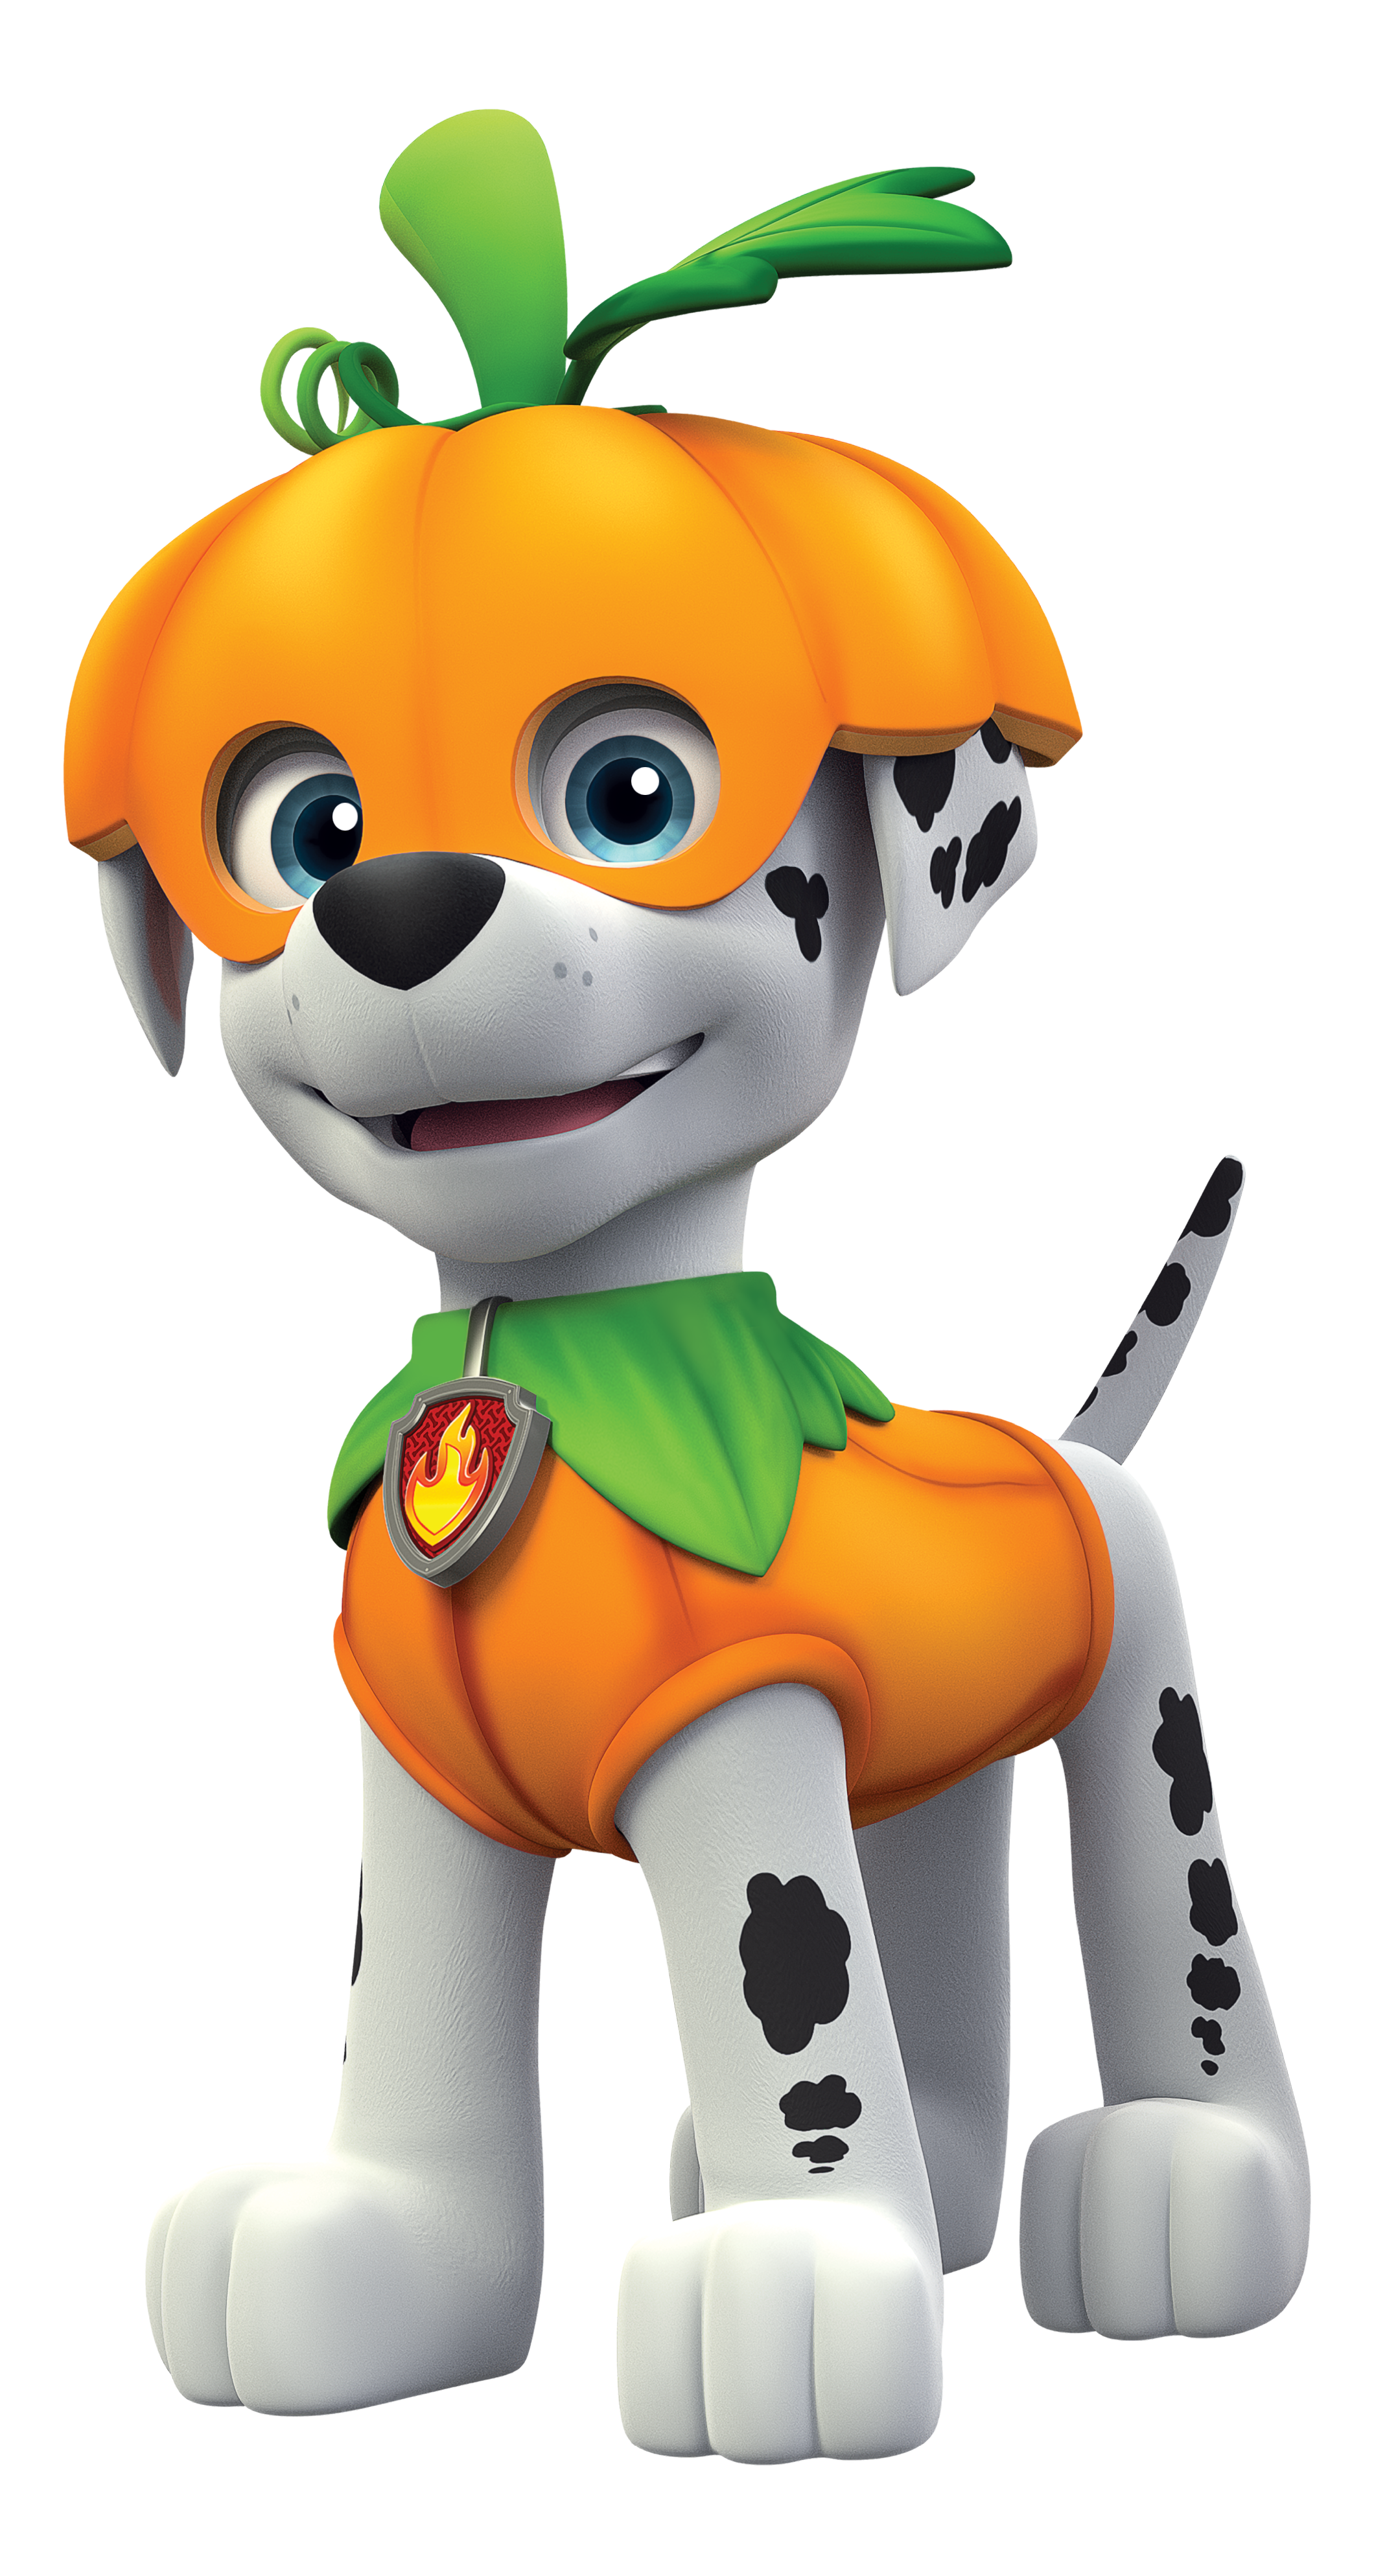 Paw patrol halloween clipart clip black and white File:PAW Patrol Marshall Halloween Costume Pumpkin.png | Paw ... clip black and white